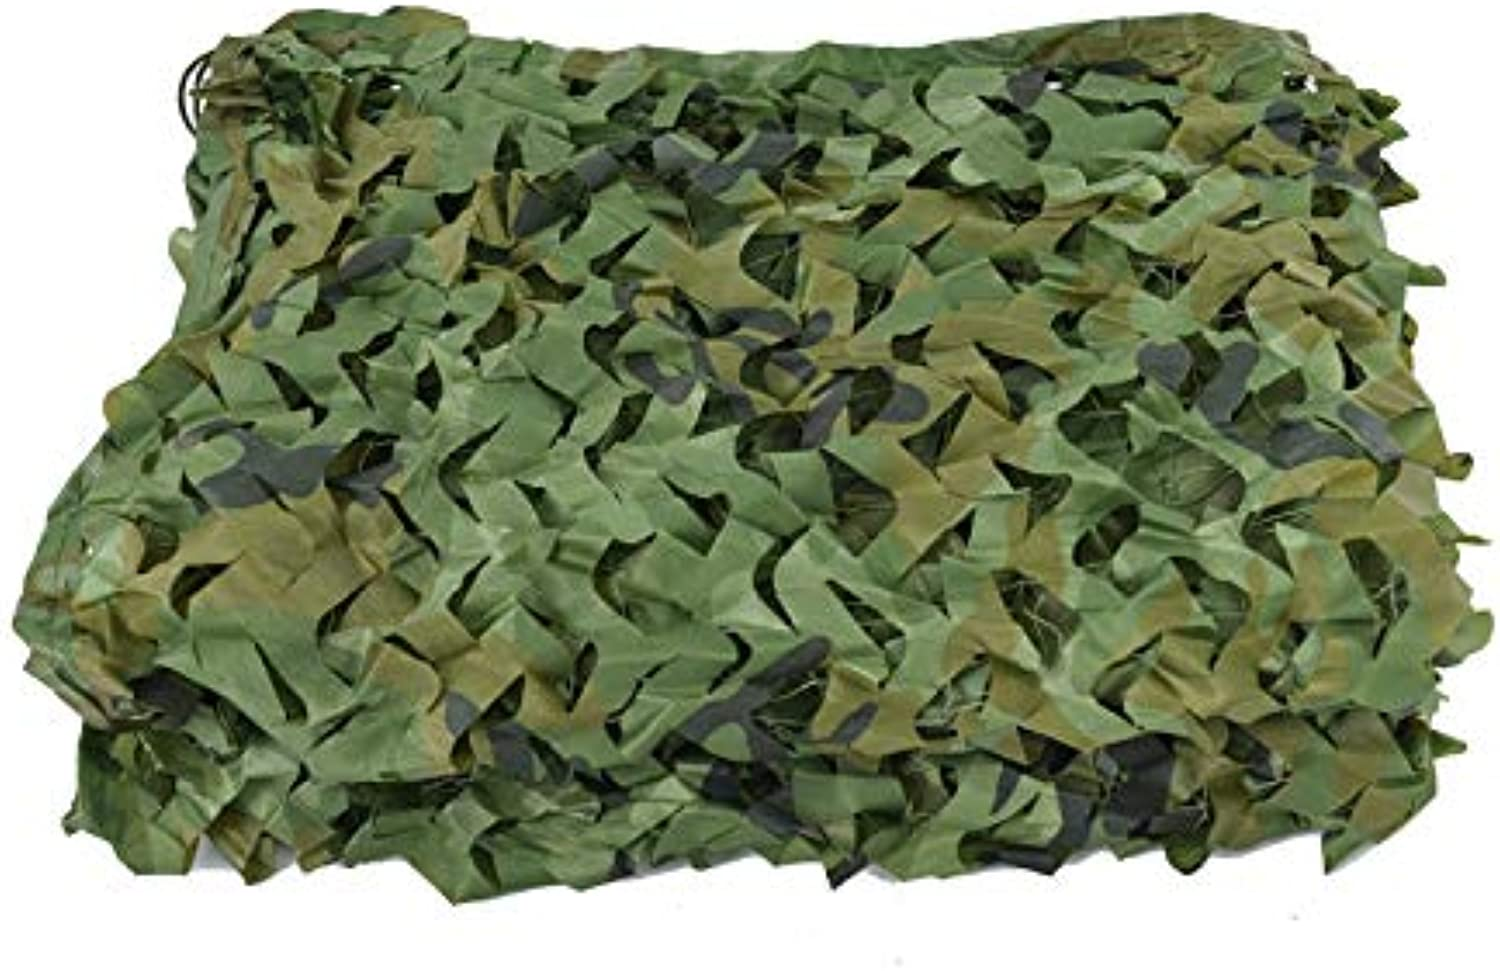 Camo Netting Woodland UV Resistant Shade Camouflage Mesh Netting for Outdoor Sunshade Decoration Hunting Blind Shooting Camping Photography